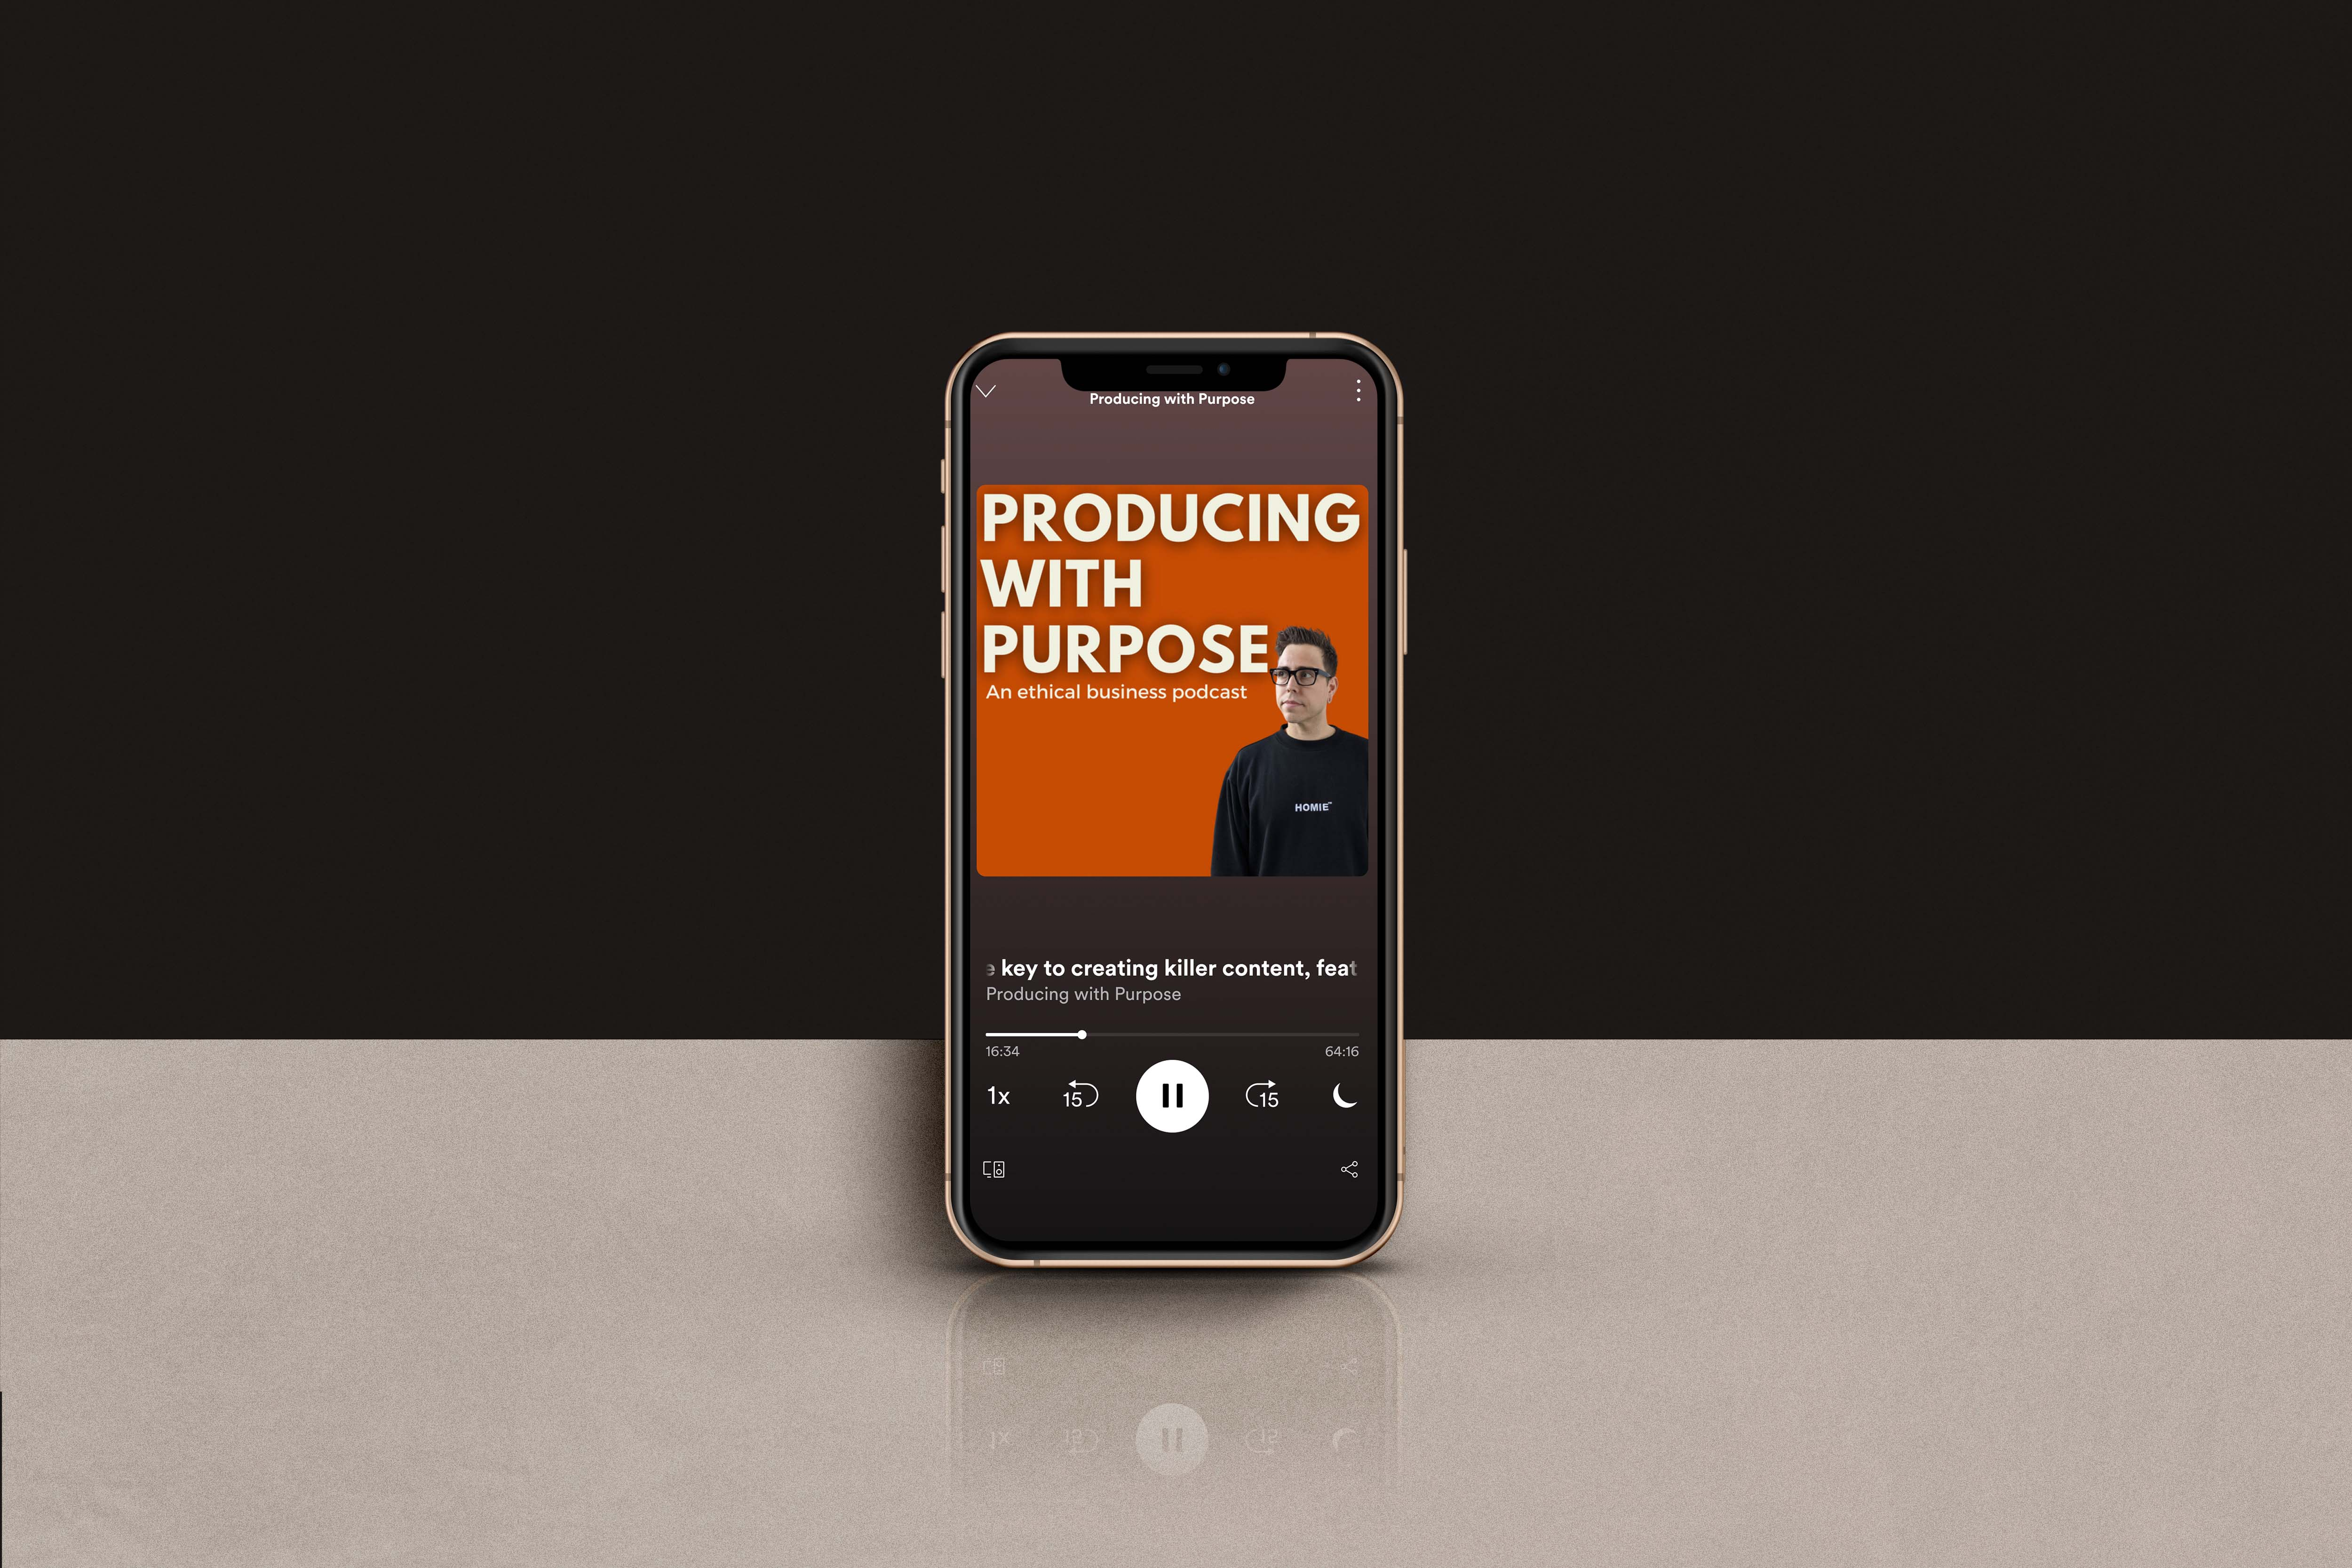 Producing with Purpose, the Ethical Business Podcast featuring Antagonist Creative Director Eric Mirbach